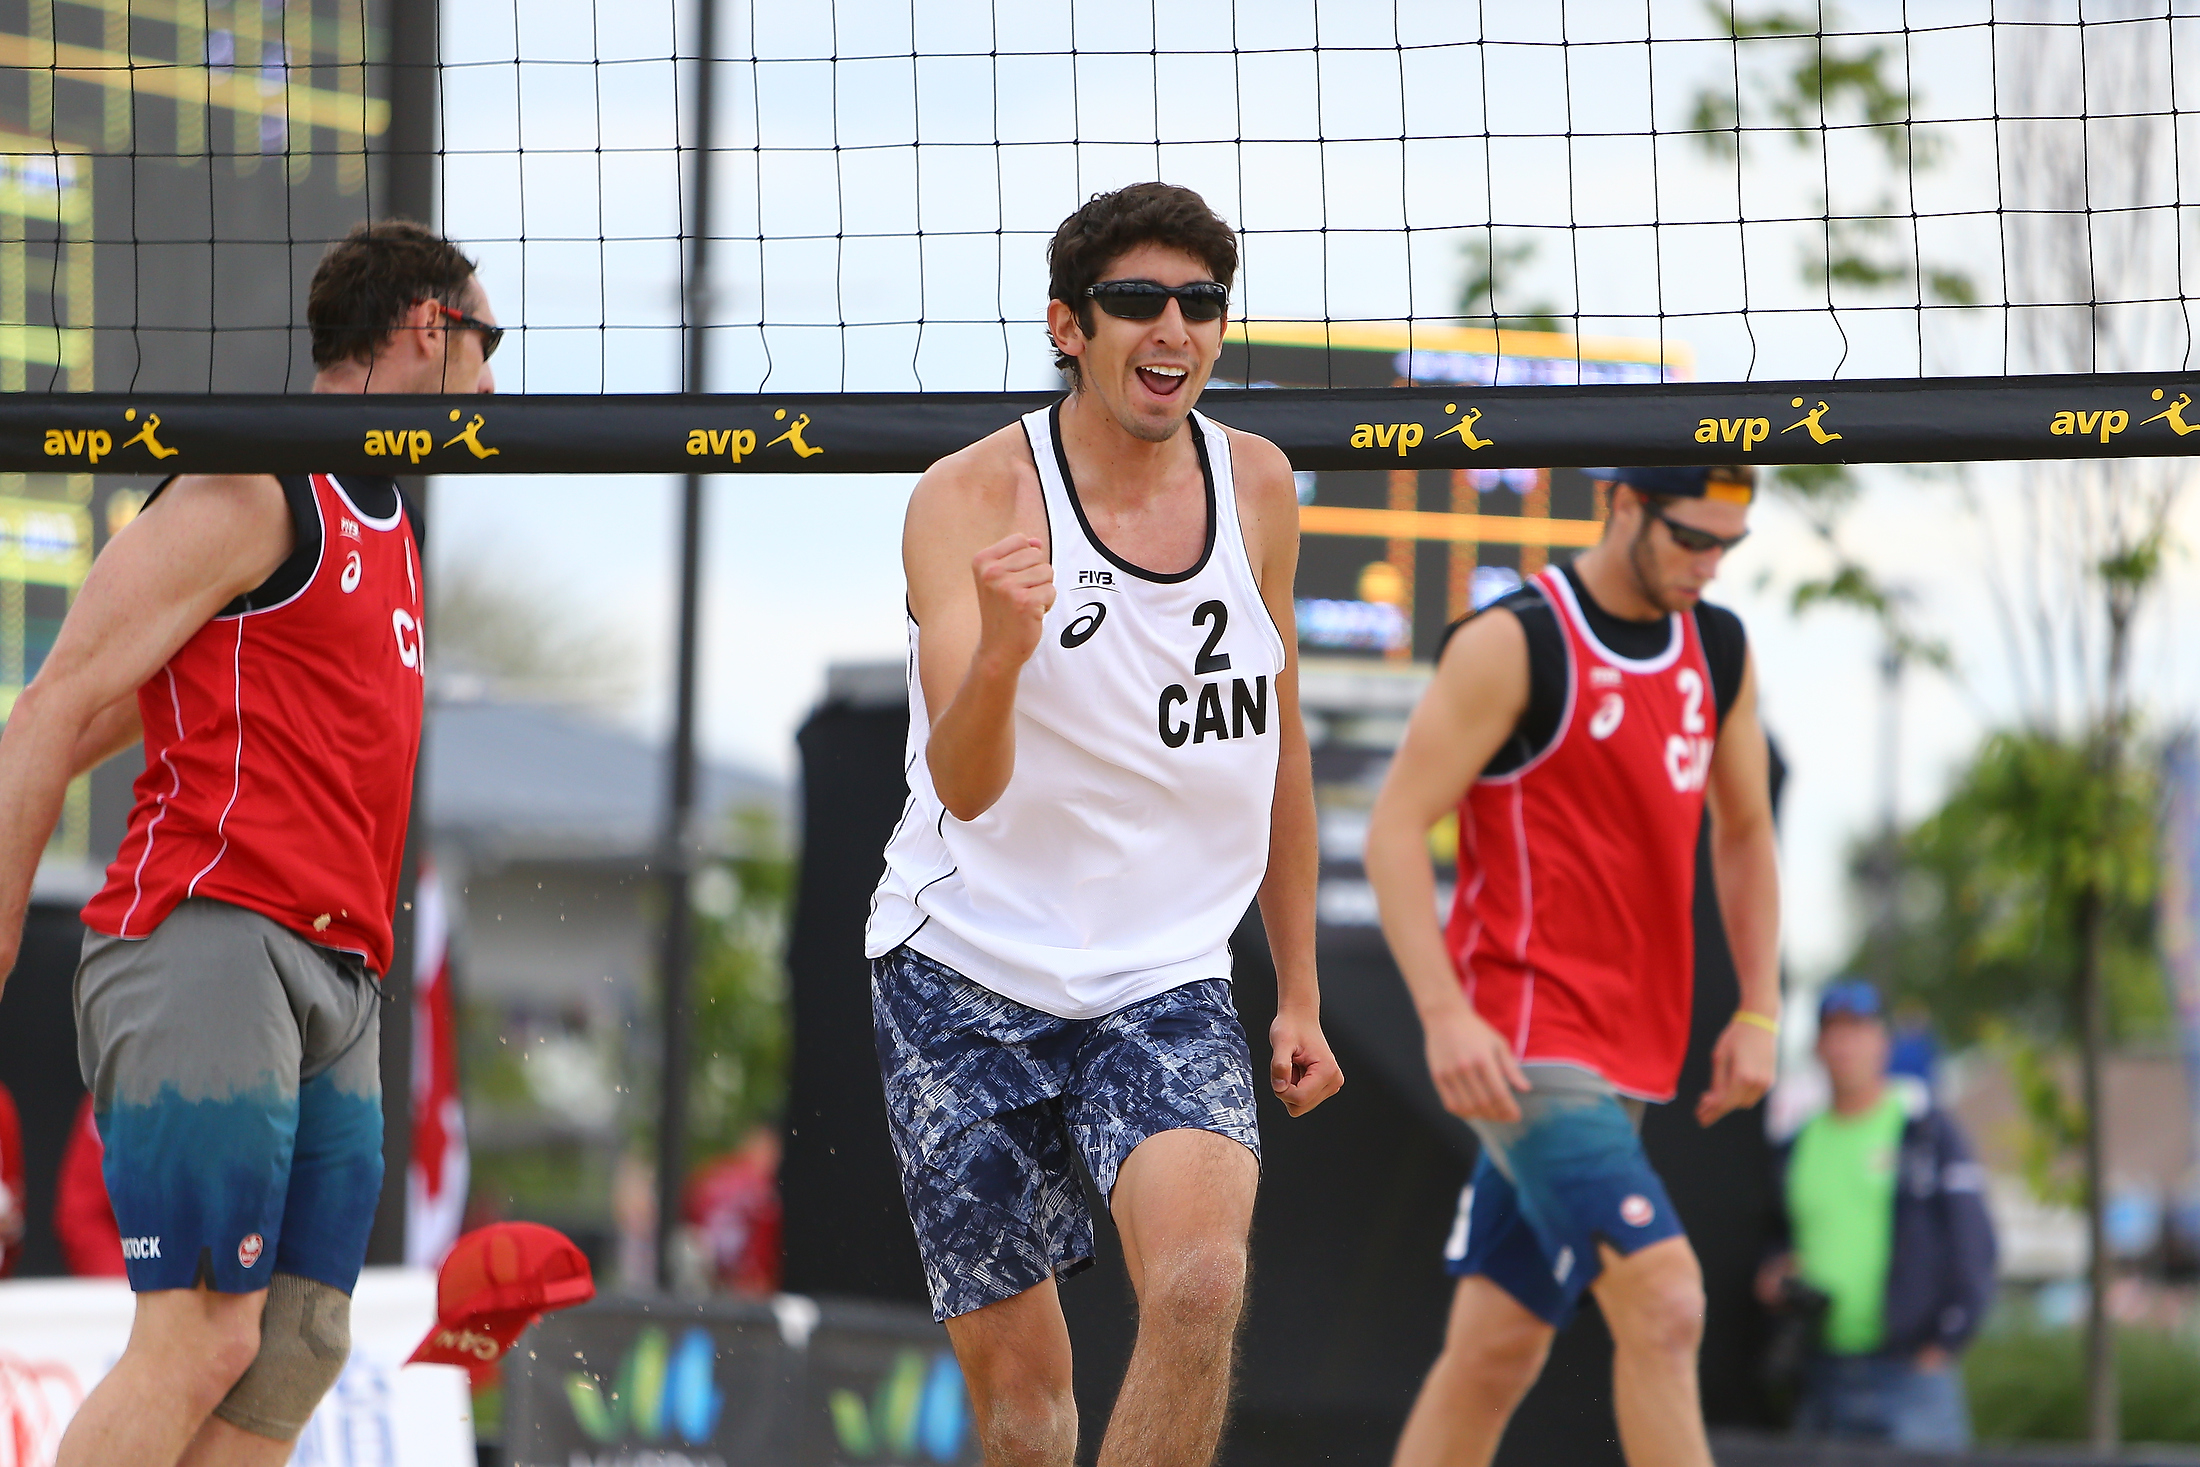 Score one for the good guys! Or maybe not... Felipe Humaña-Paredes celebrates a point against Binstock/Schachter. Photo: FIVB